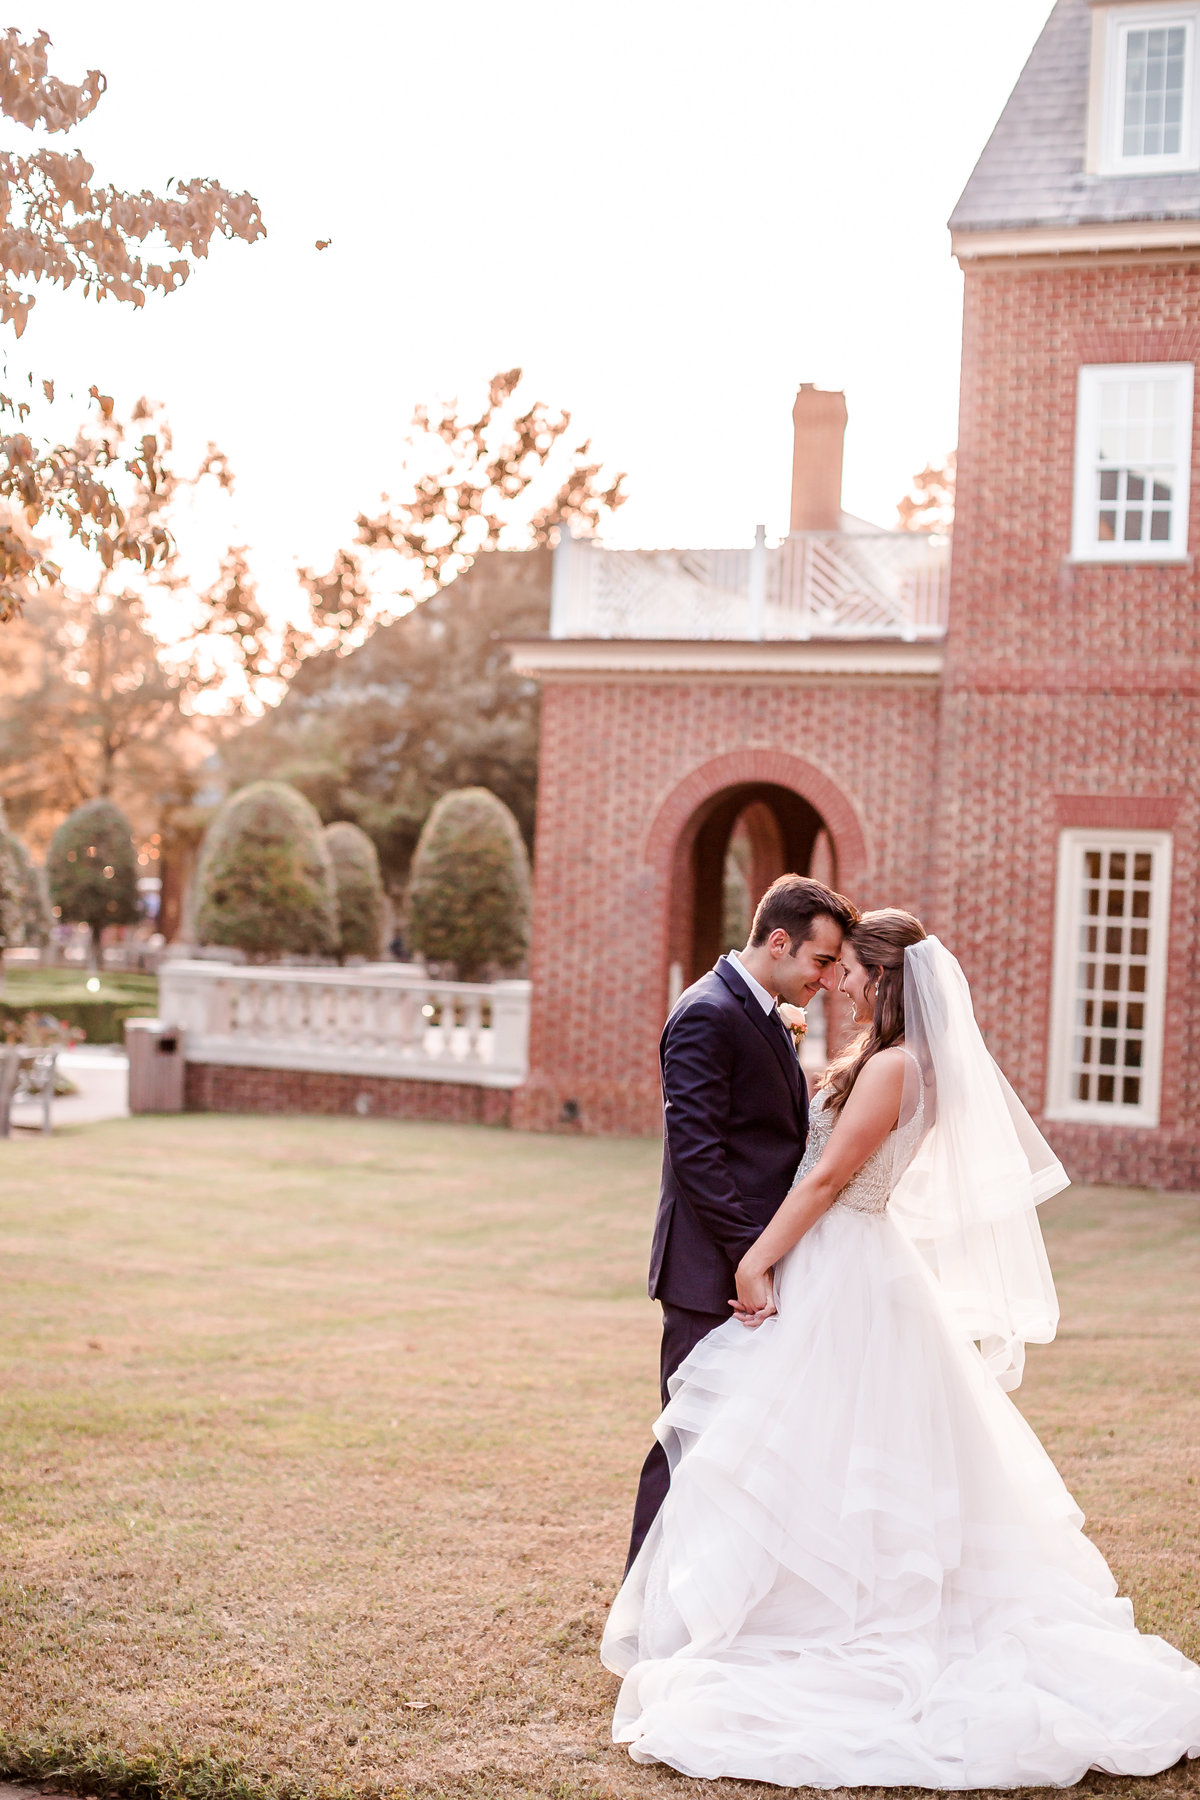 meghan lupyan hampton roads wedding photographer147